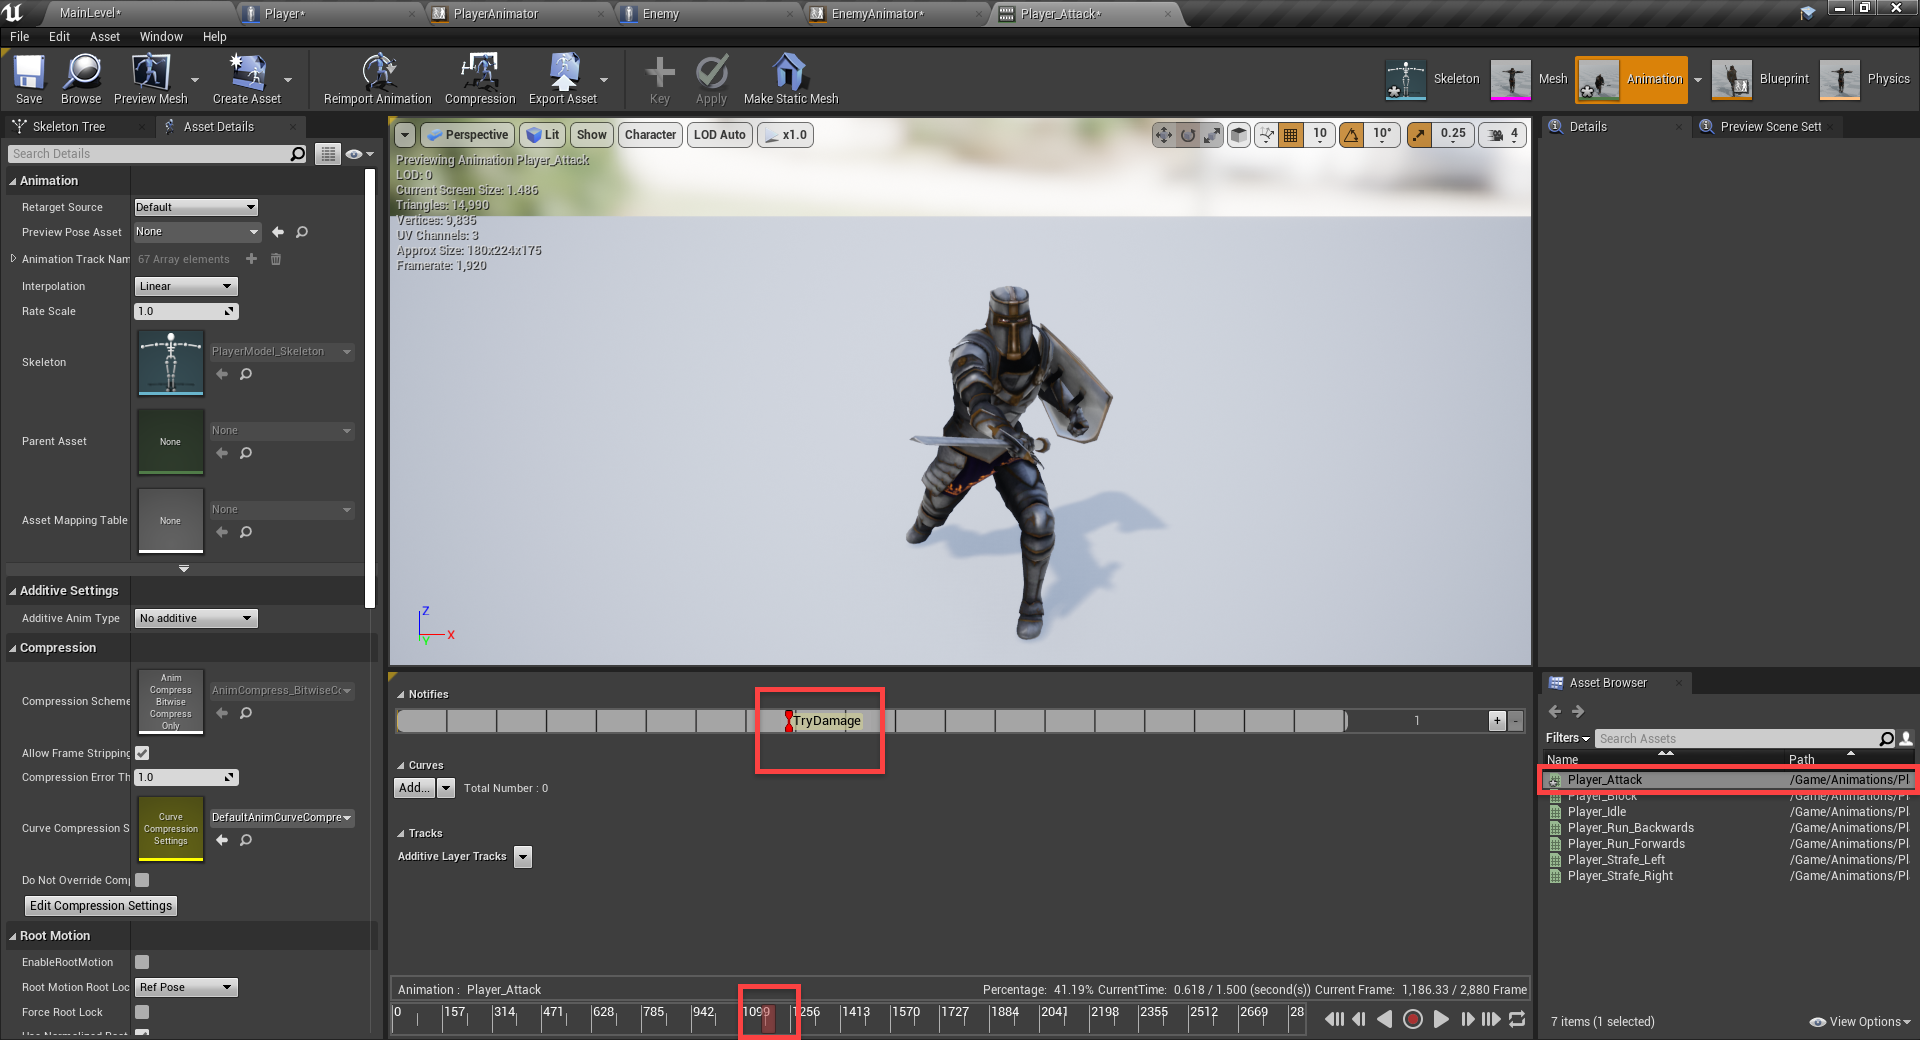 Unreal Engine animation with Try Damage function trigger added